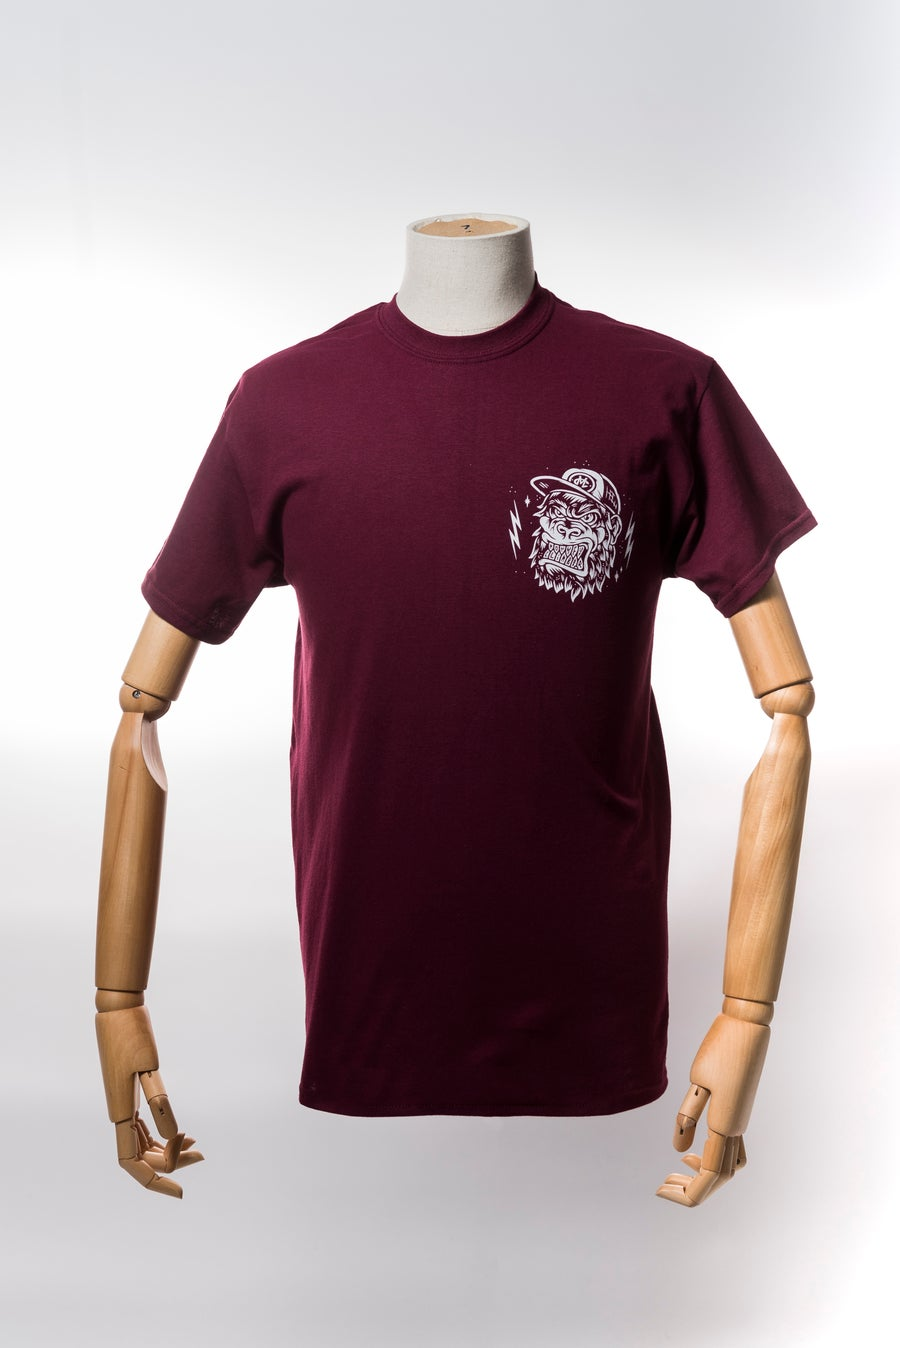 Image of Monkey Climber APE shirt I Burgundy